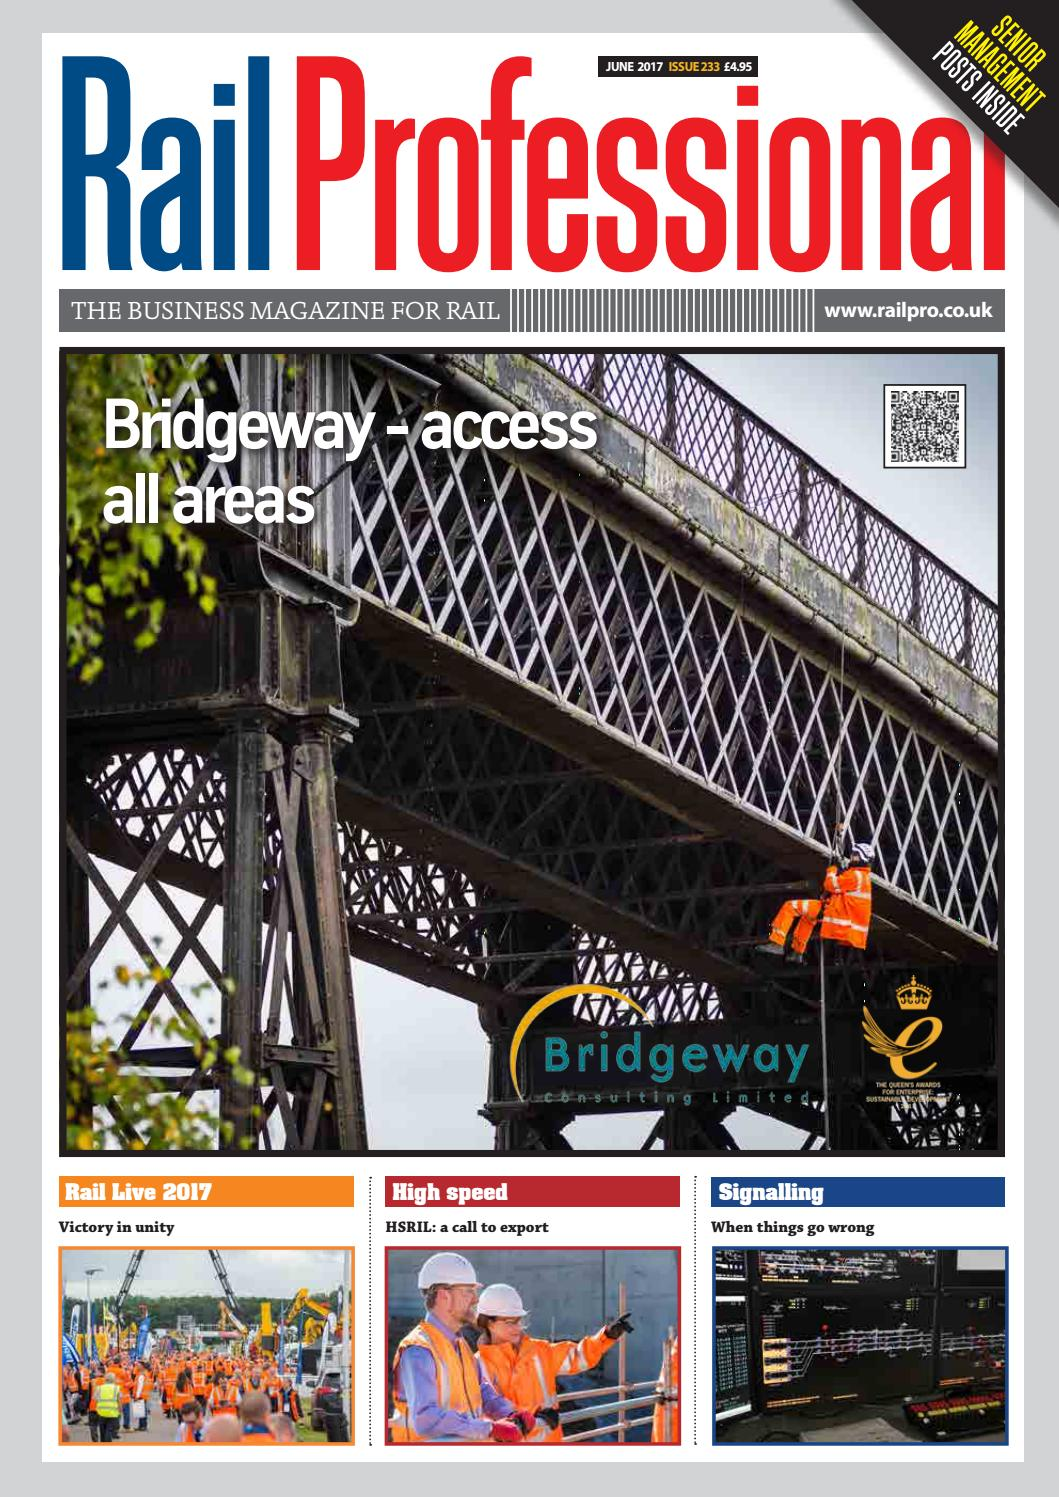 Rail Professional June 2017 By Magazine Issuu Ballmilldiagram Ball Mill Diagram Http Wayanadnoticeboardcom